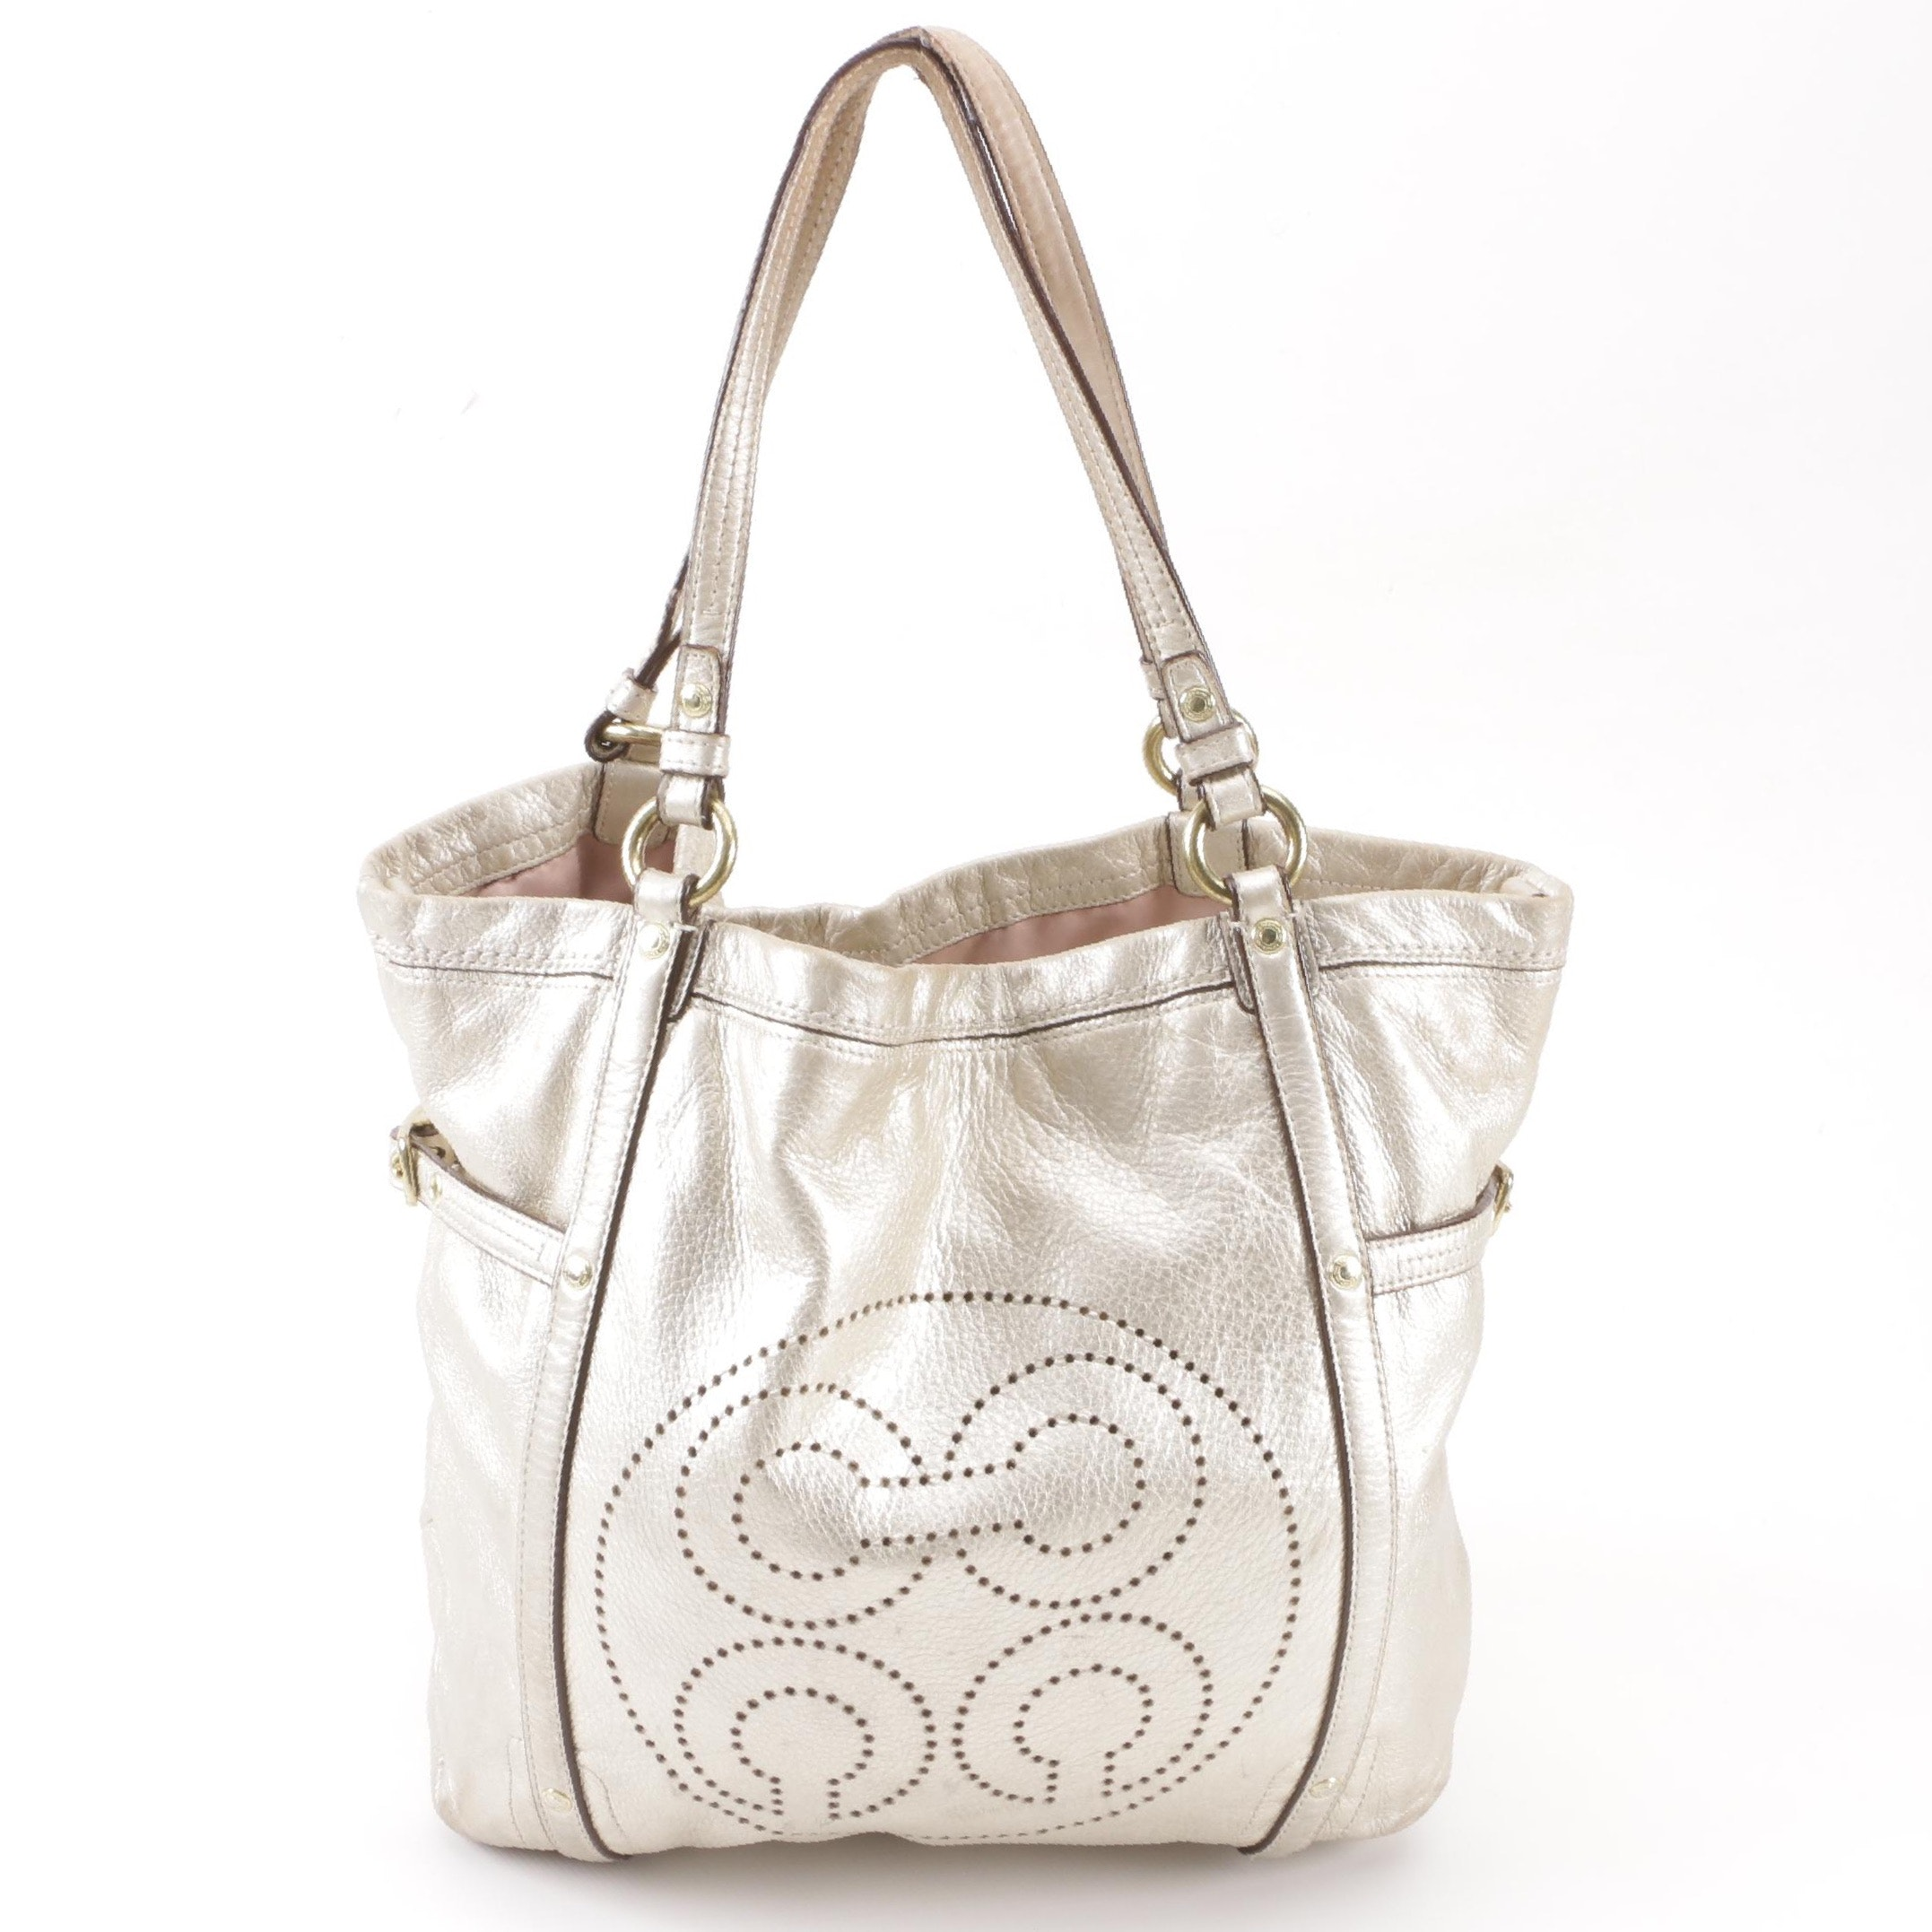 Coach Audrey Perforated Large Metallic Leather Tote